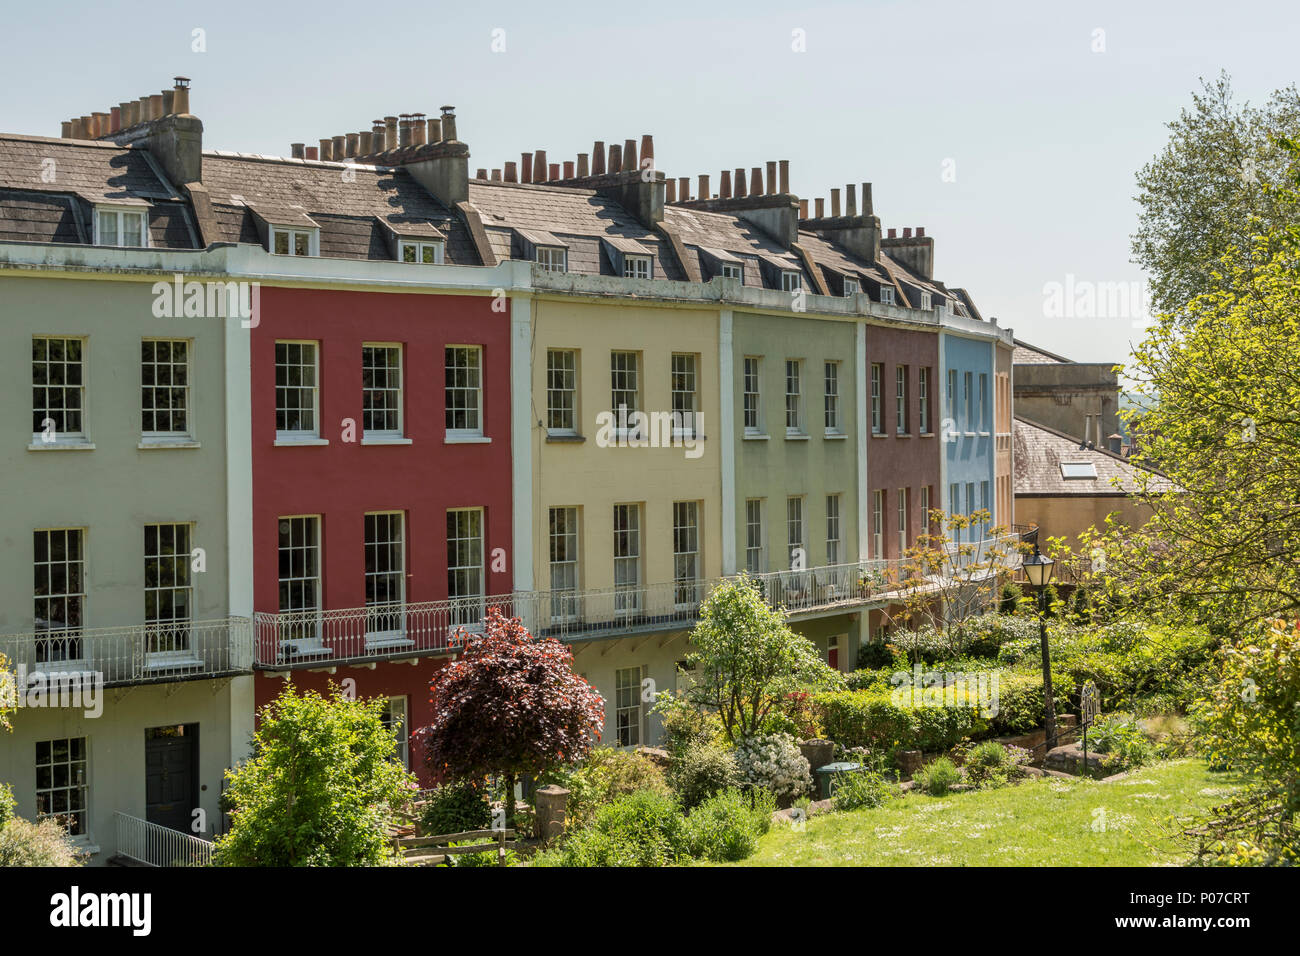 The Polygon in Cliftonwood, Bristol, UK, a terraced Georgian crescent with a communal garden. - Stock Image